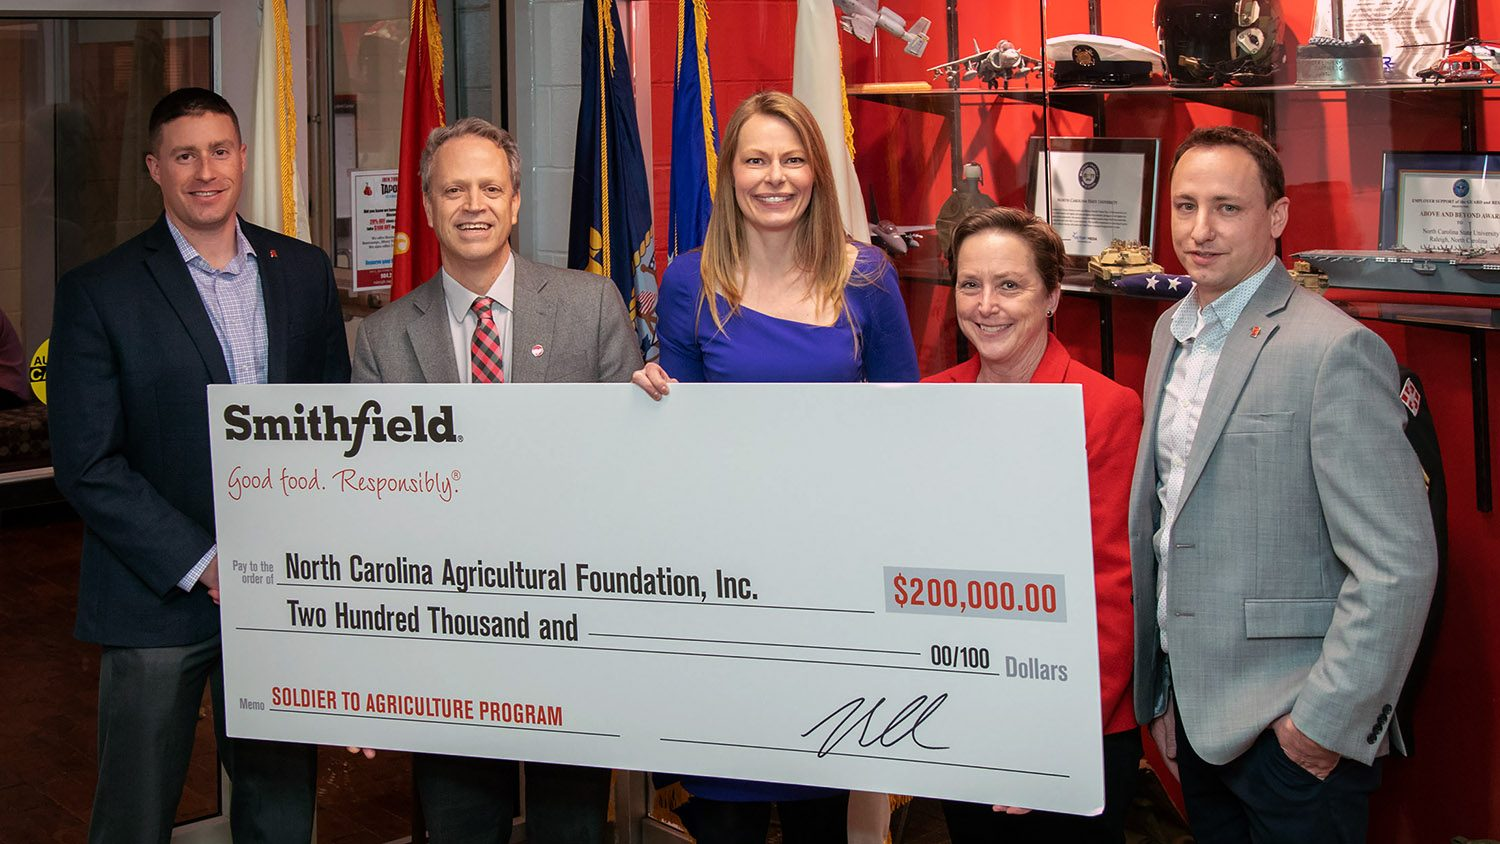 Smithfield Foods donates to CALS' Soldier to Agriculture Program